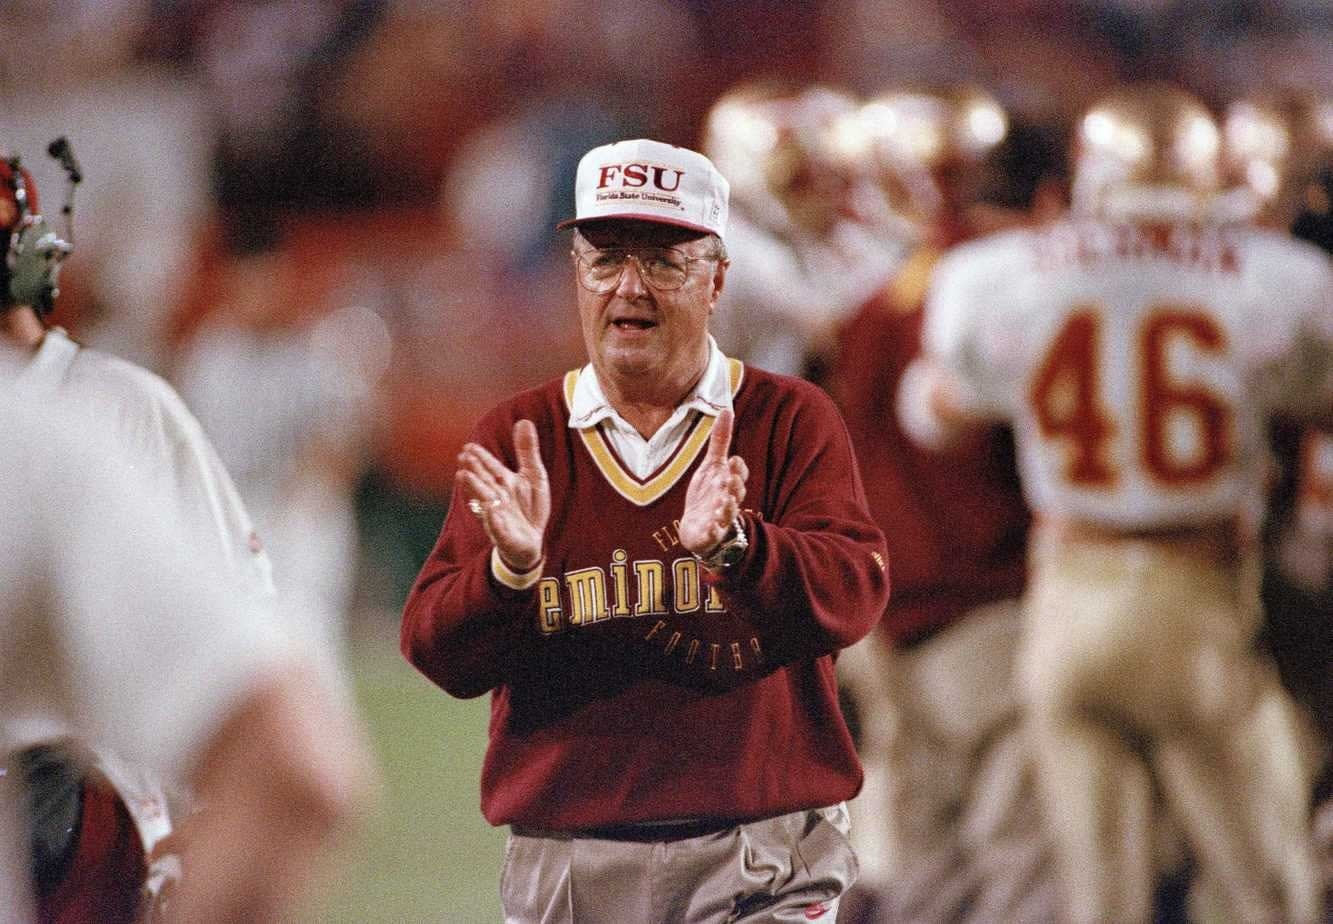 Legendary Florida State coach Bobby Bowden is receiving many well wishes after he announced that he's been diagnosed with a terminal illness